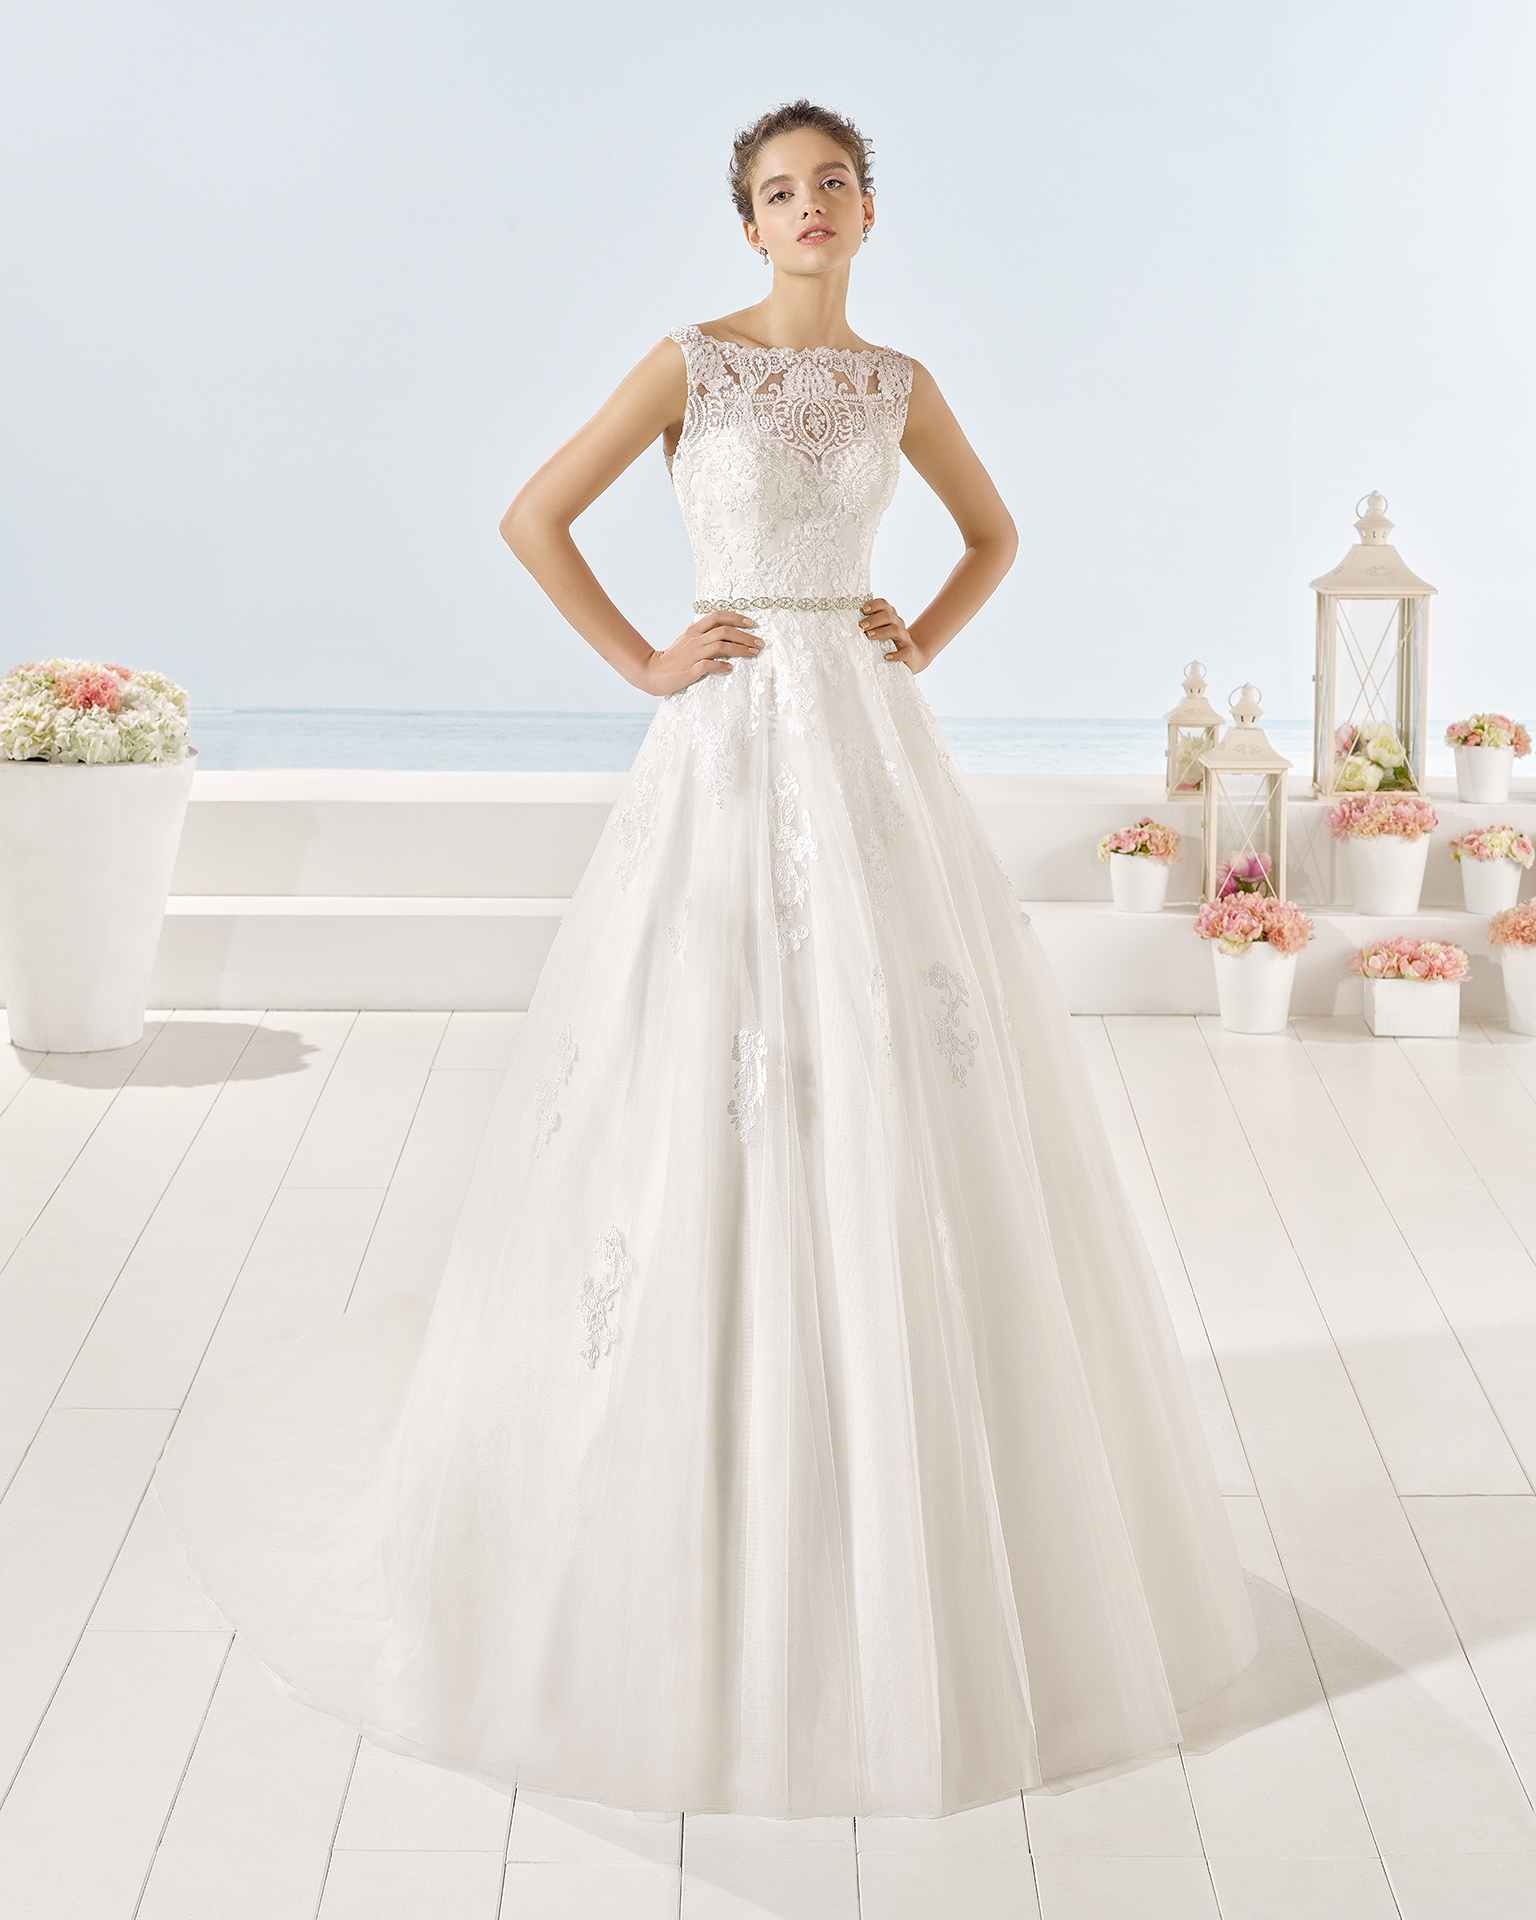 Yersey wedding dress, Luna Novias 2017